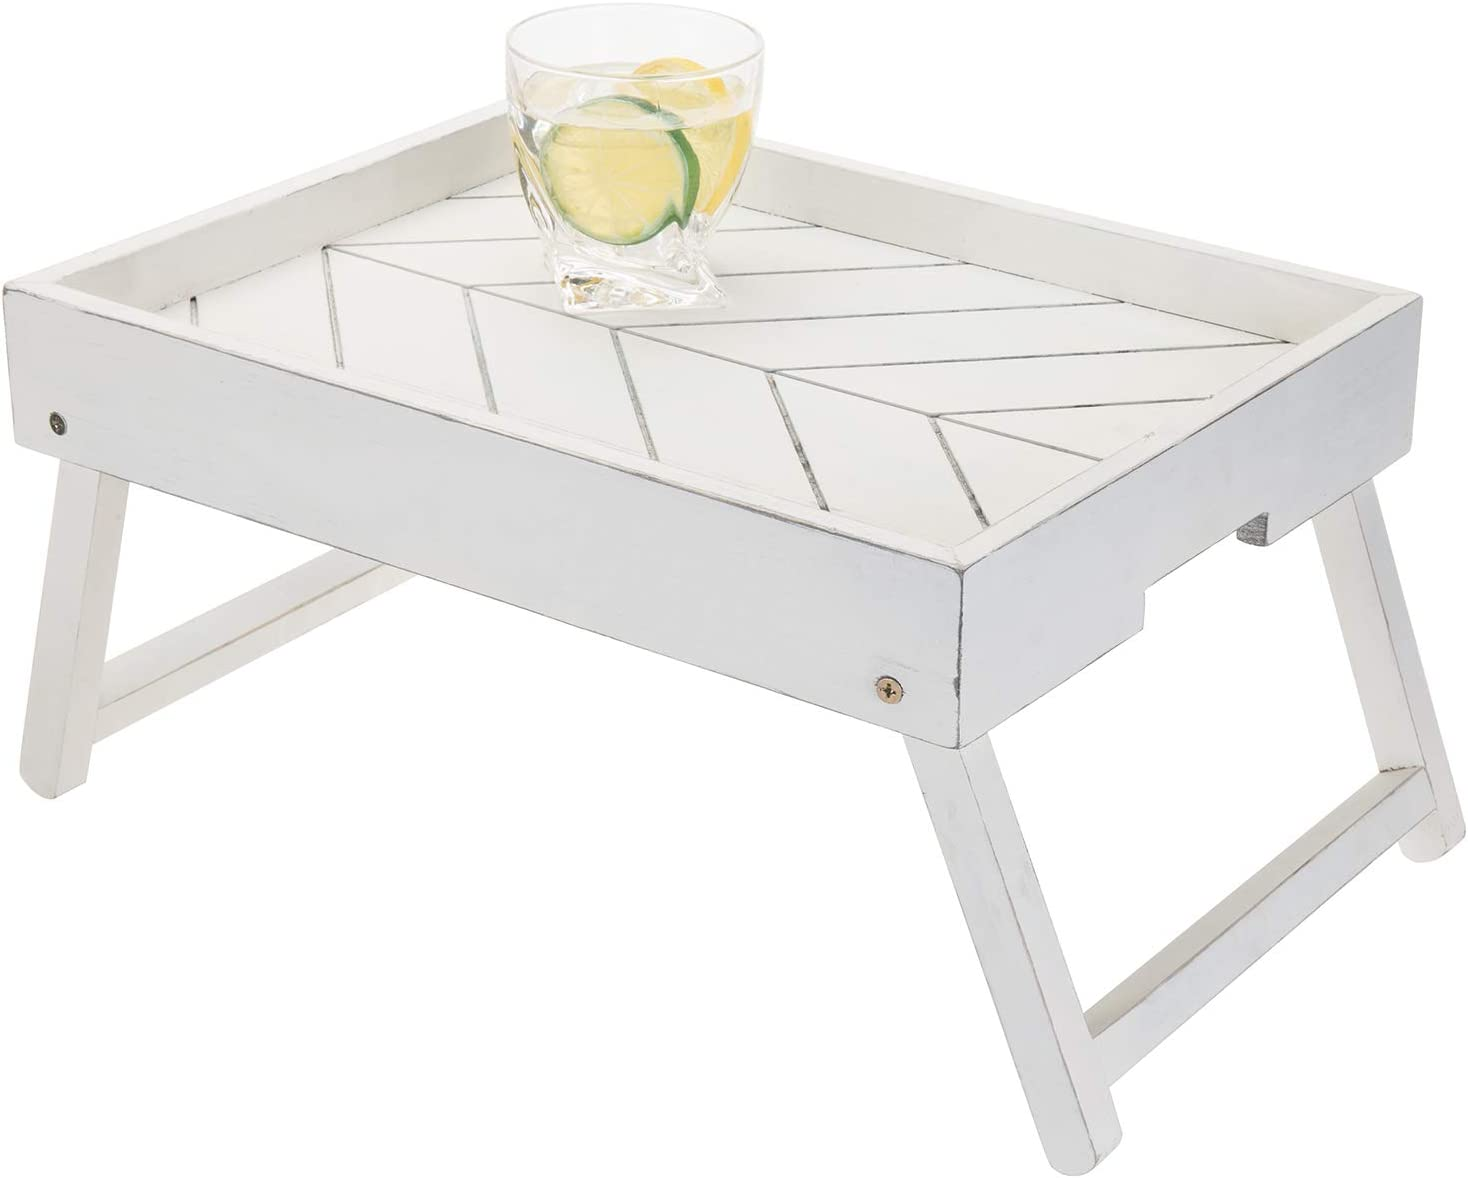 Max 56% OFF MyGift Vintage White Wood Breakfast Legs Foldable Safety and trust Tray Brea with